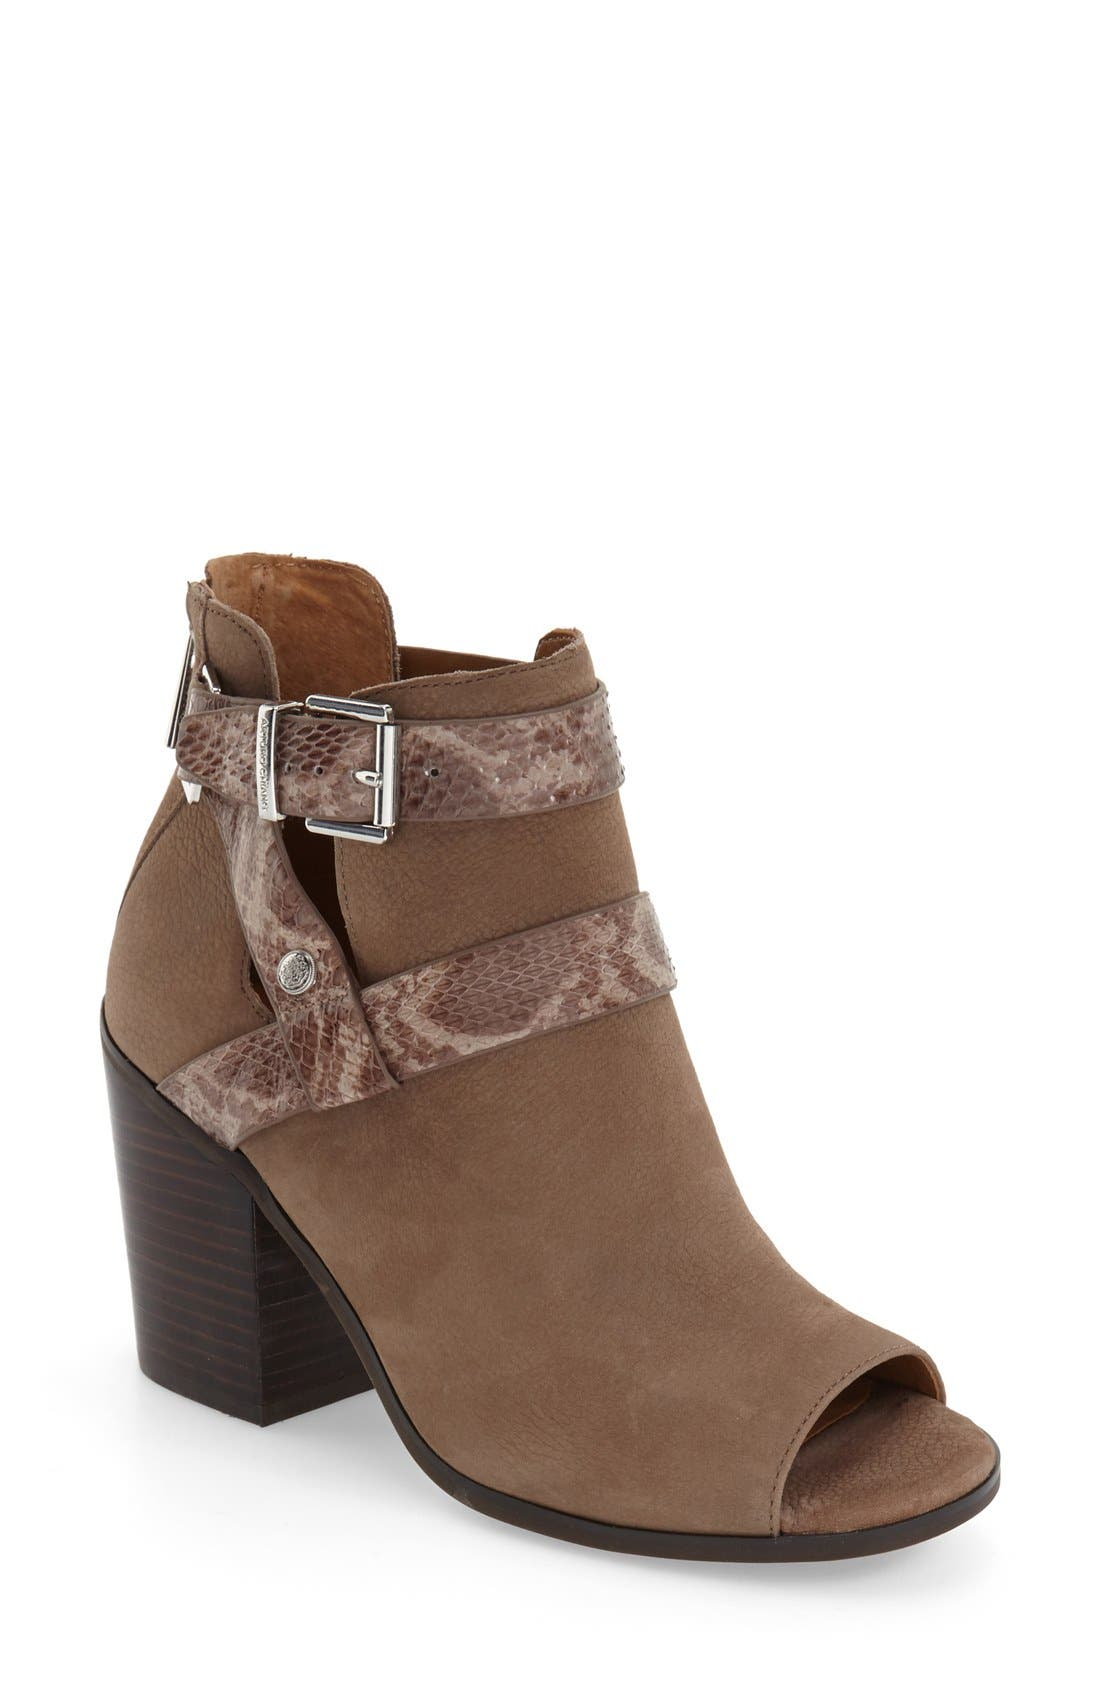 'Caraleigh' Peep Toe Bootie,                         Main,                         color, Cinder Leather